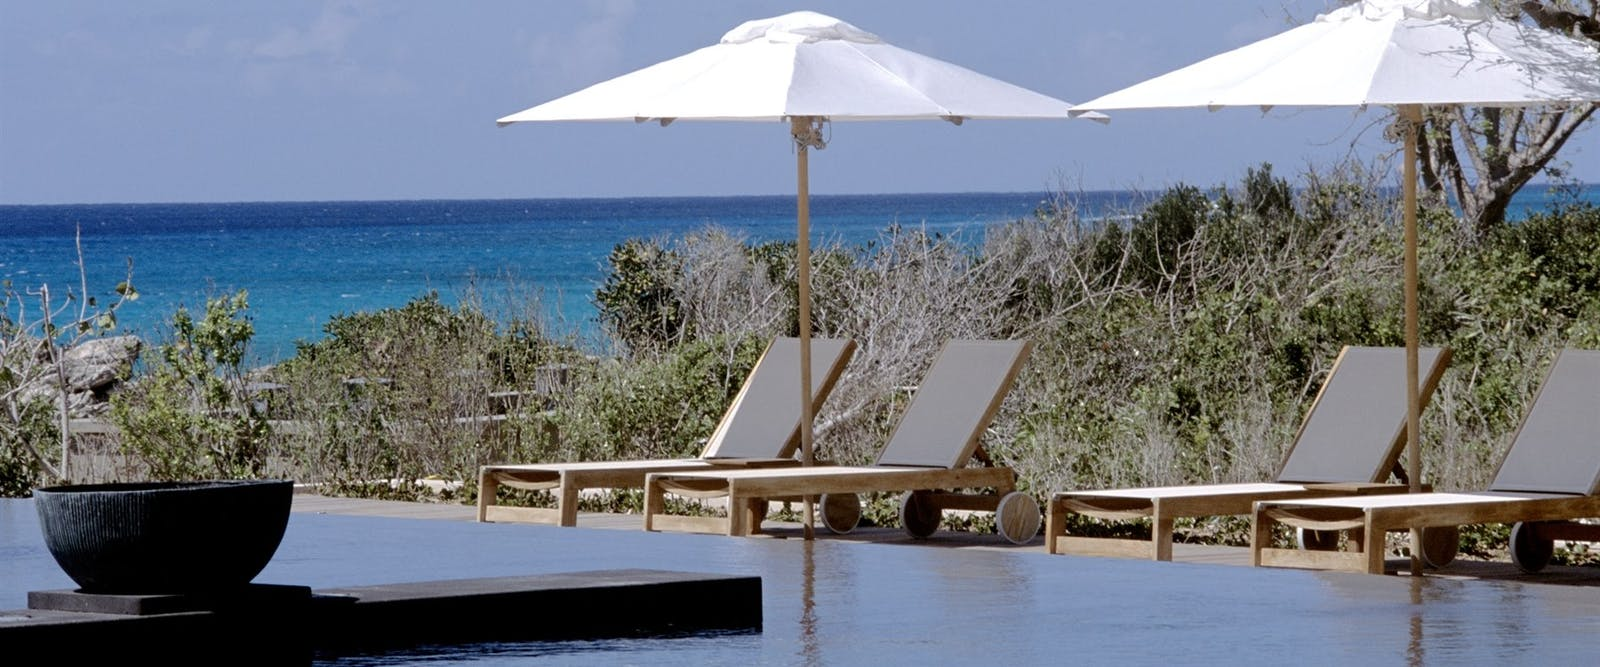 Sun loungers at Amanyara, Turks and Caicos